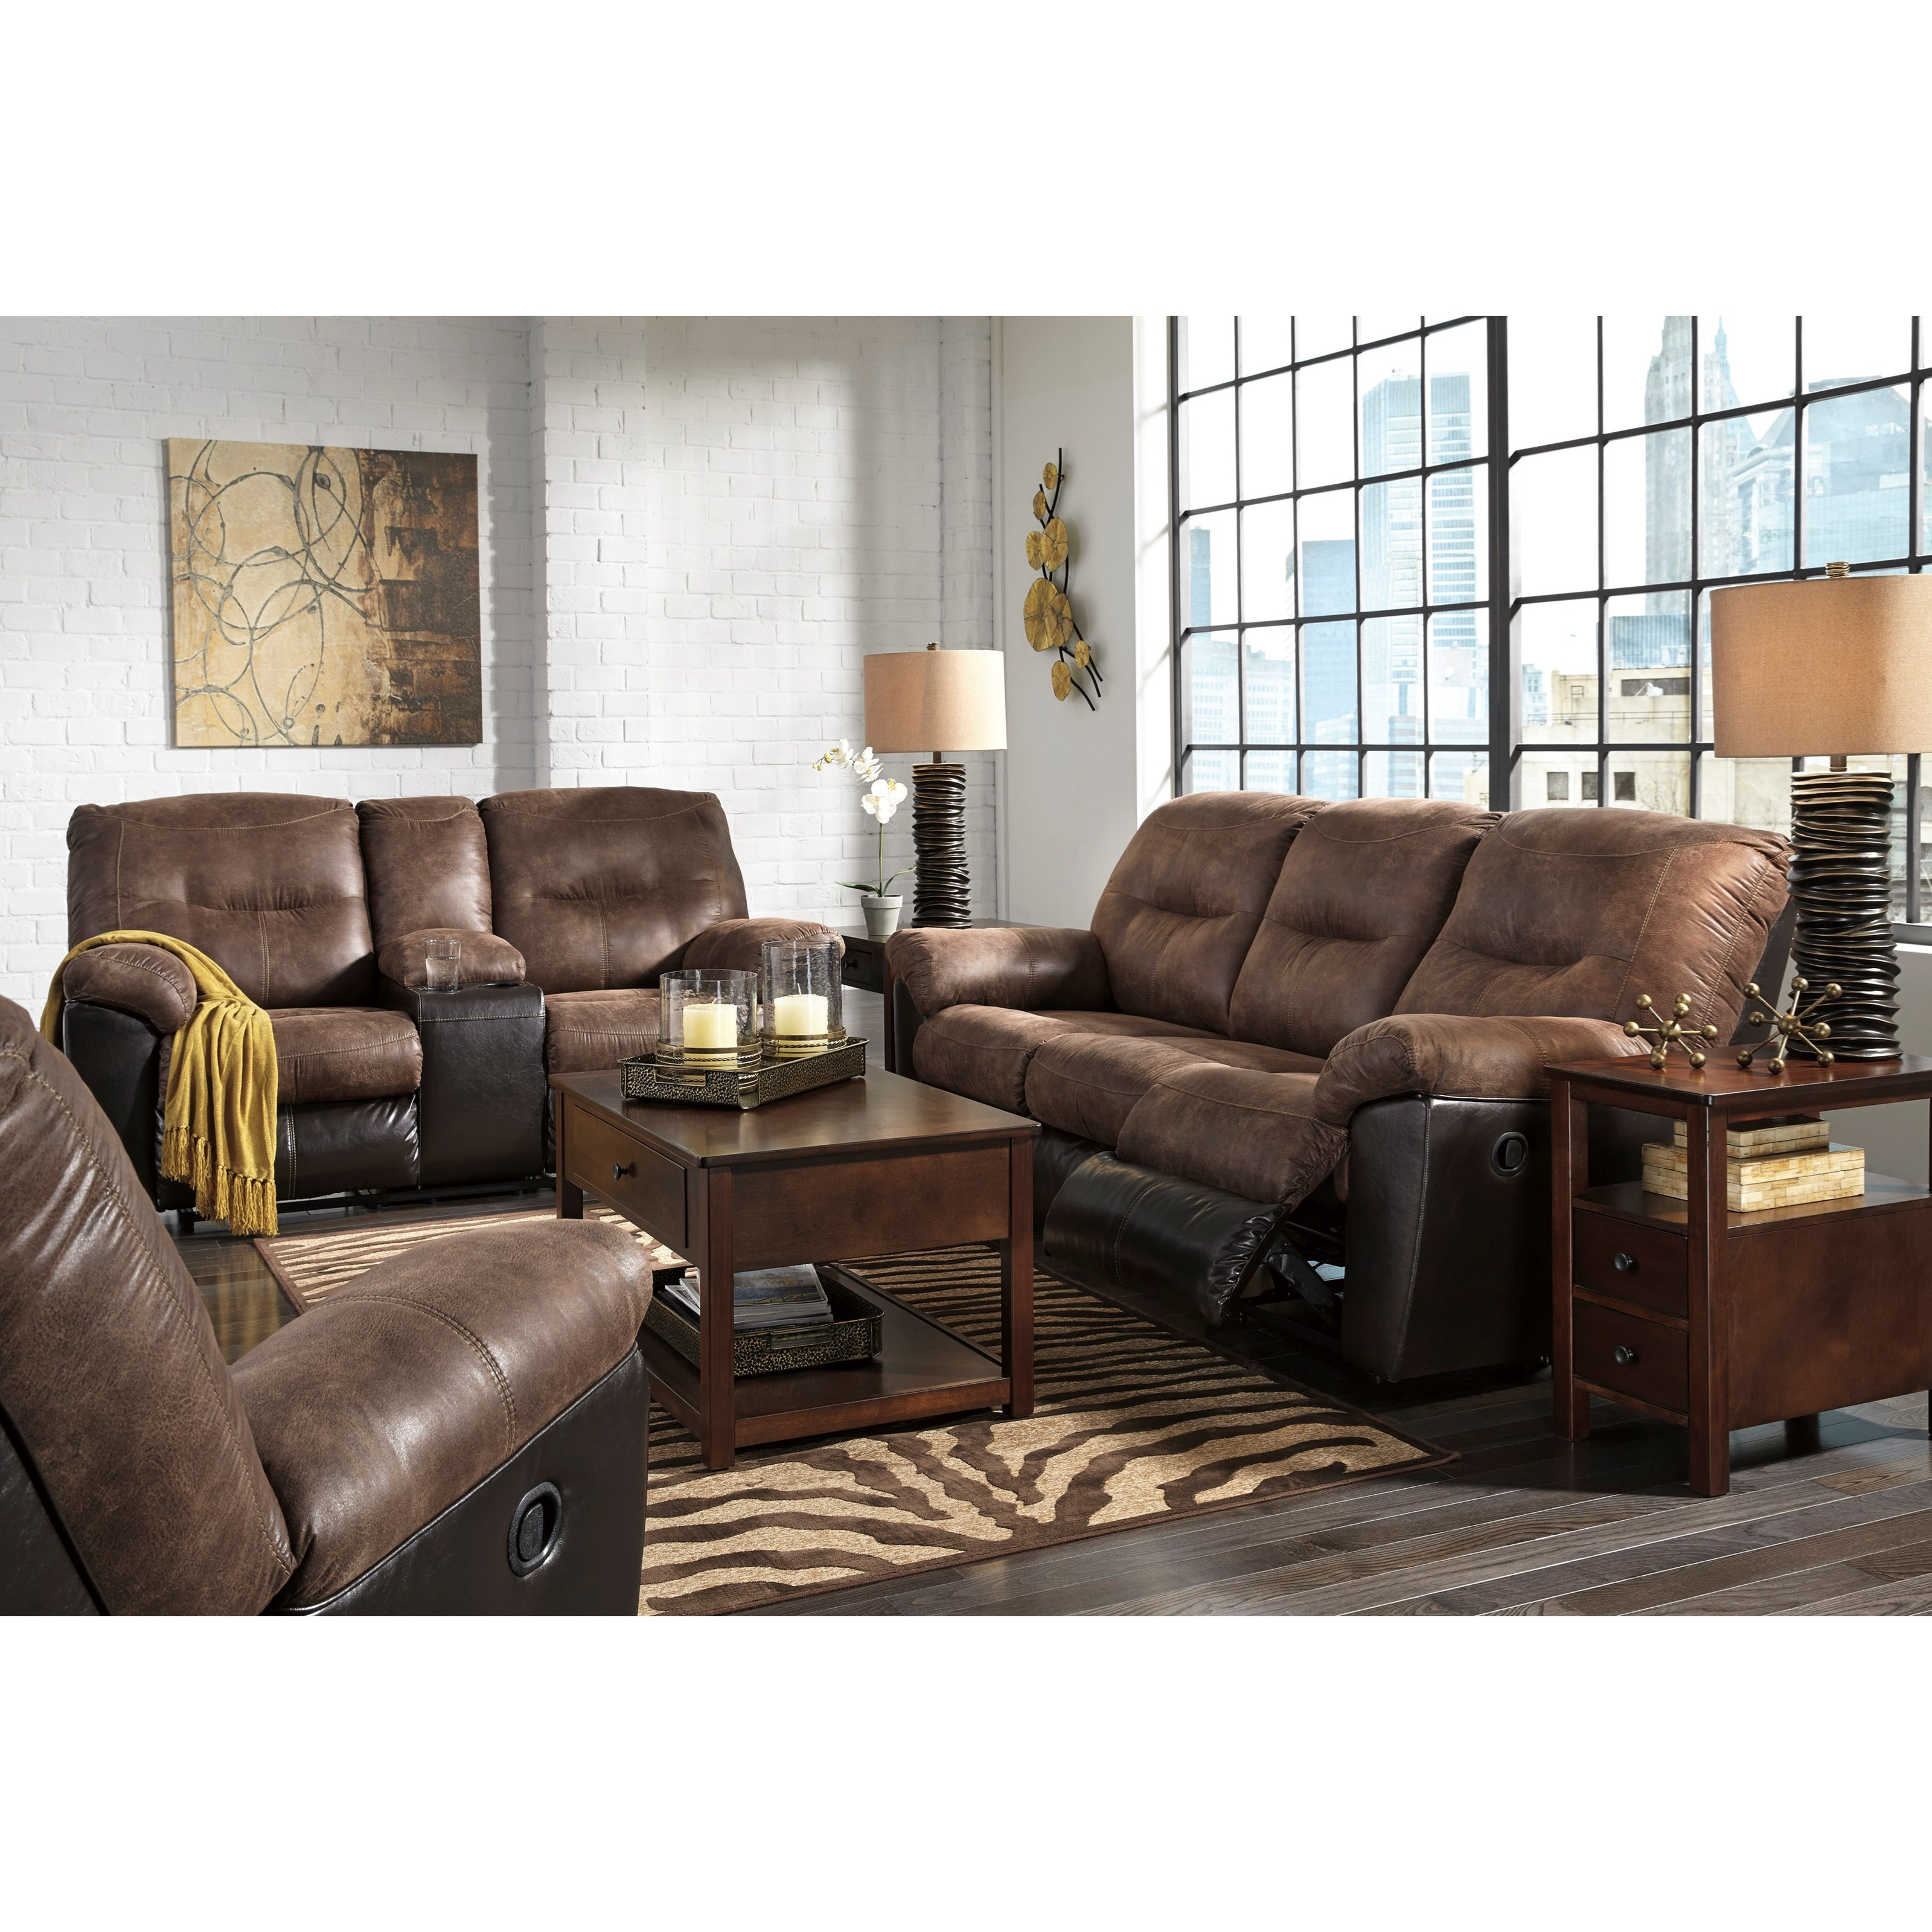 Two Tone Faux Leather Reclining Sofa By Signature Design